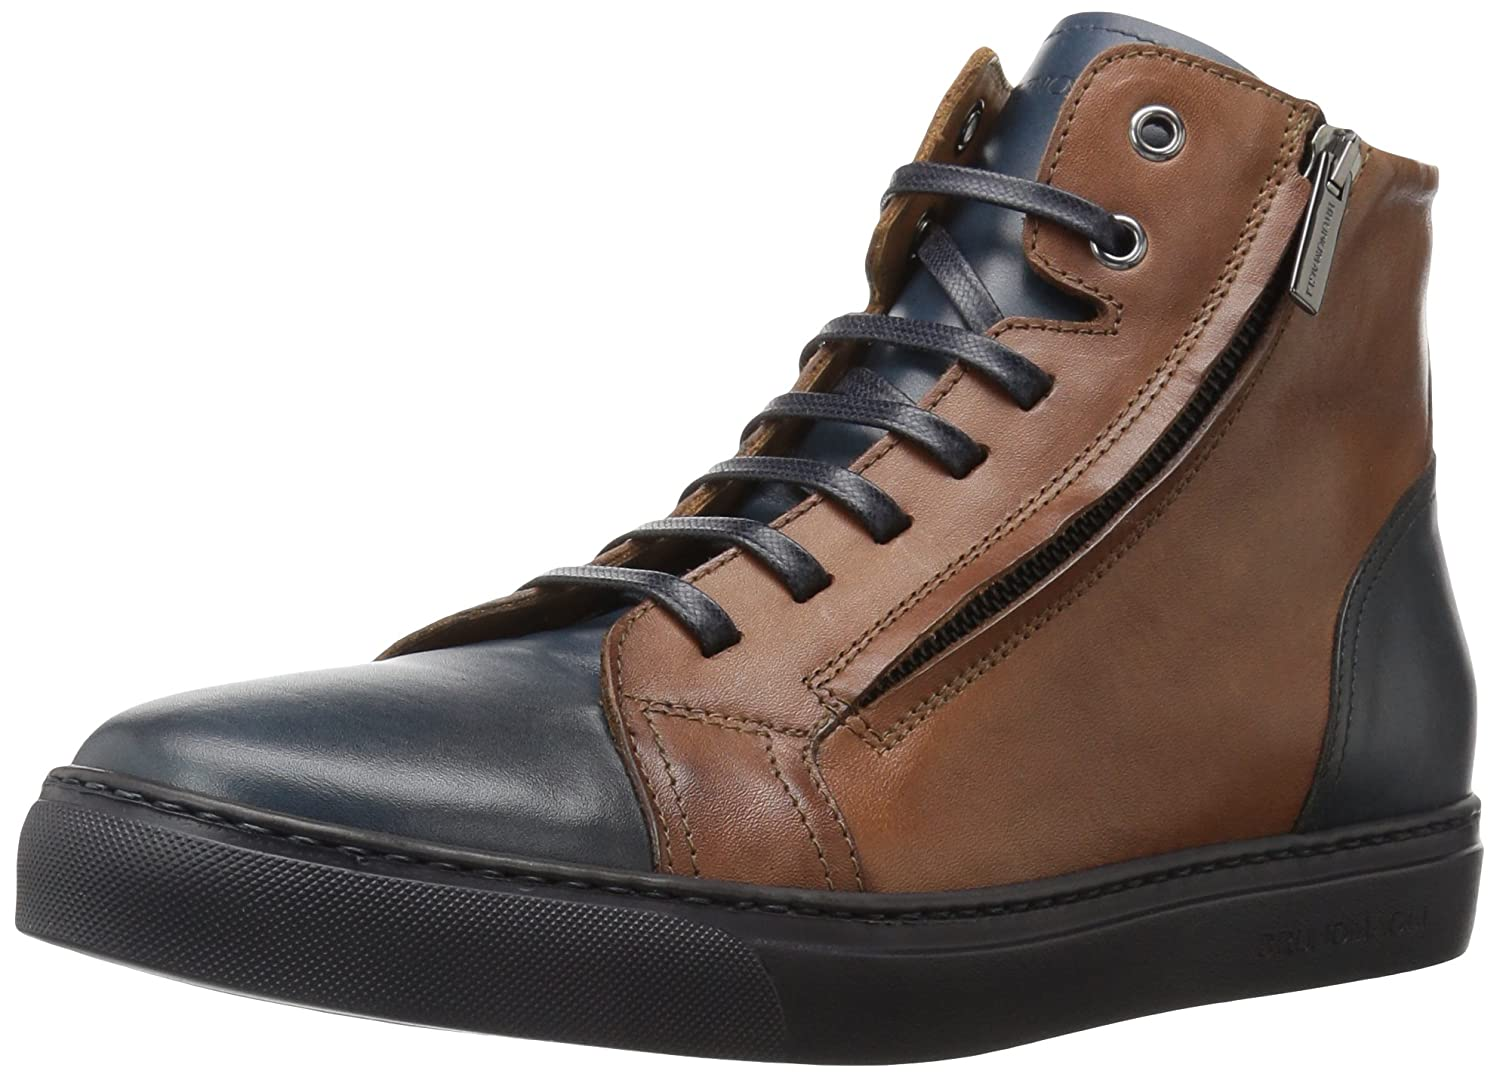 ce37ee78544 Amazon.com  Bruno Magli Men s Vizzi Fashion Sneaker